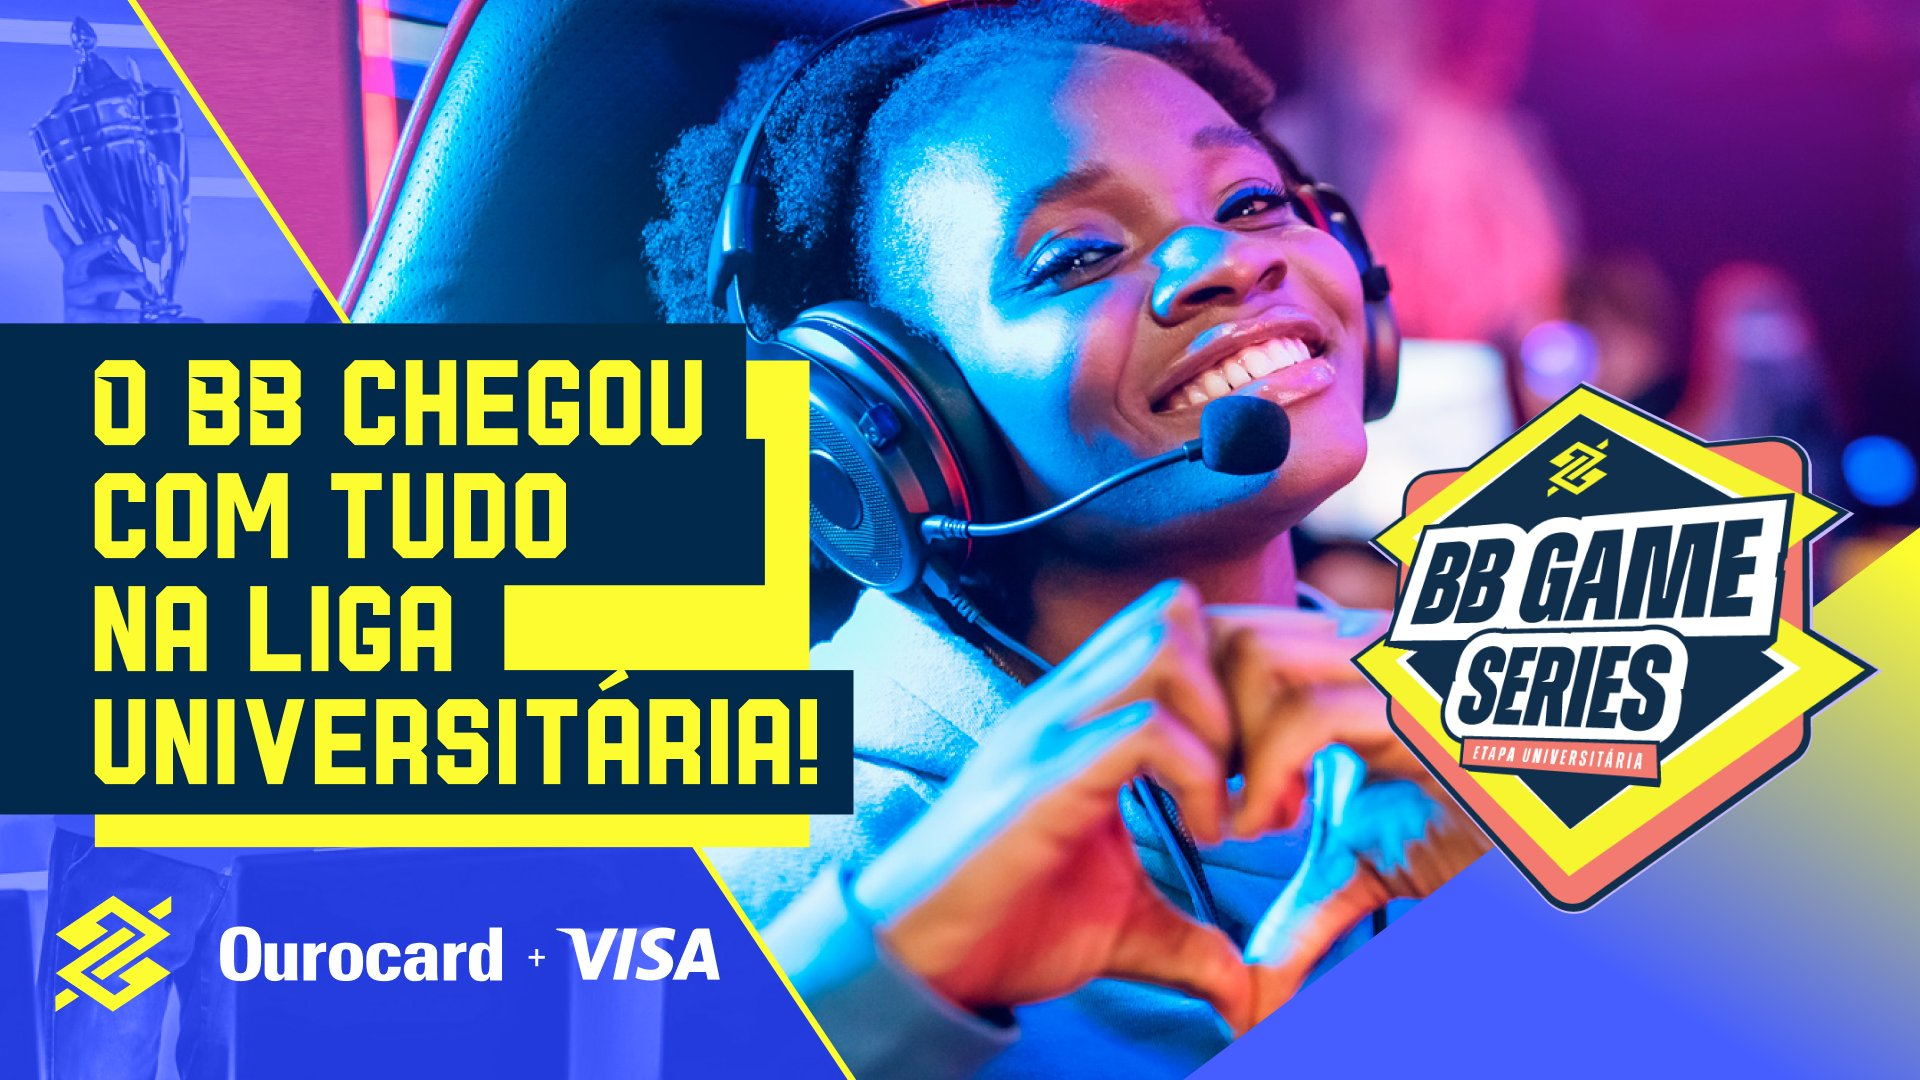 Esporte Banco do Brasil partners with Visa to launch BB Game Series